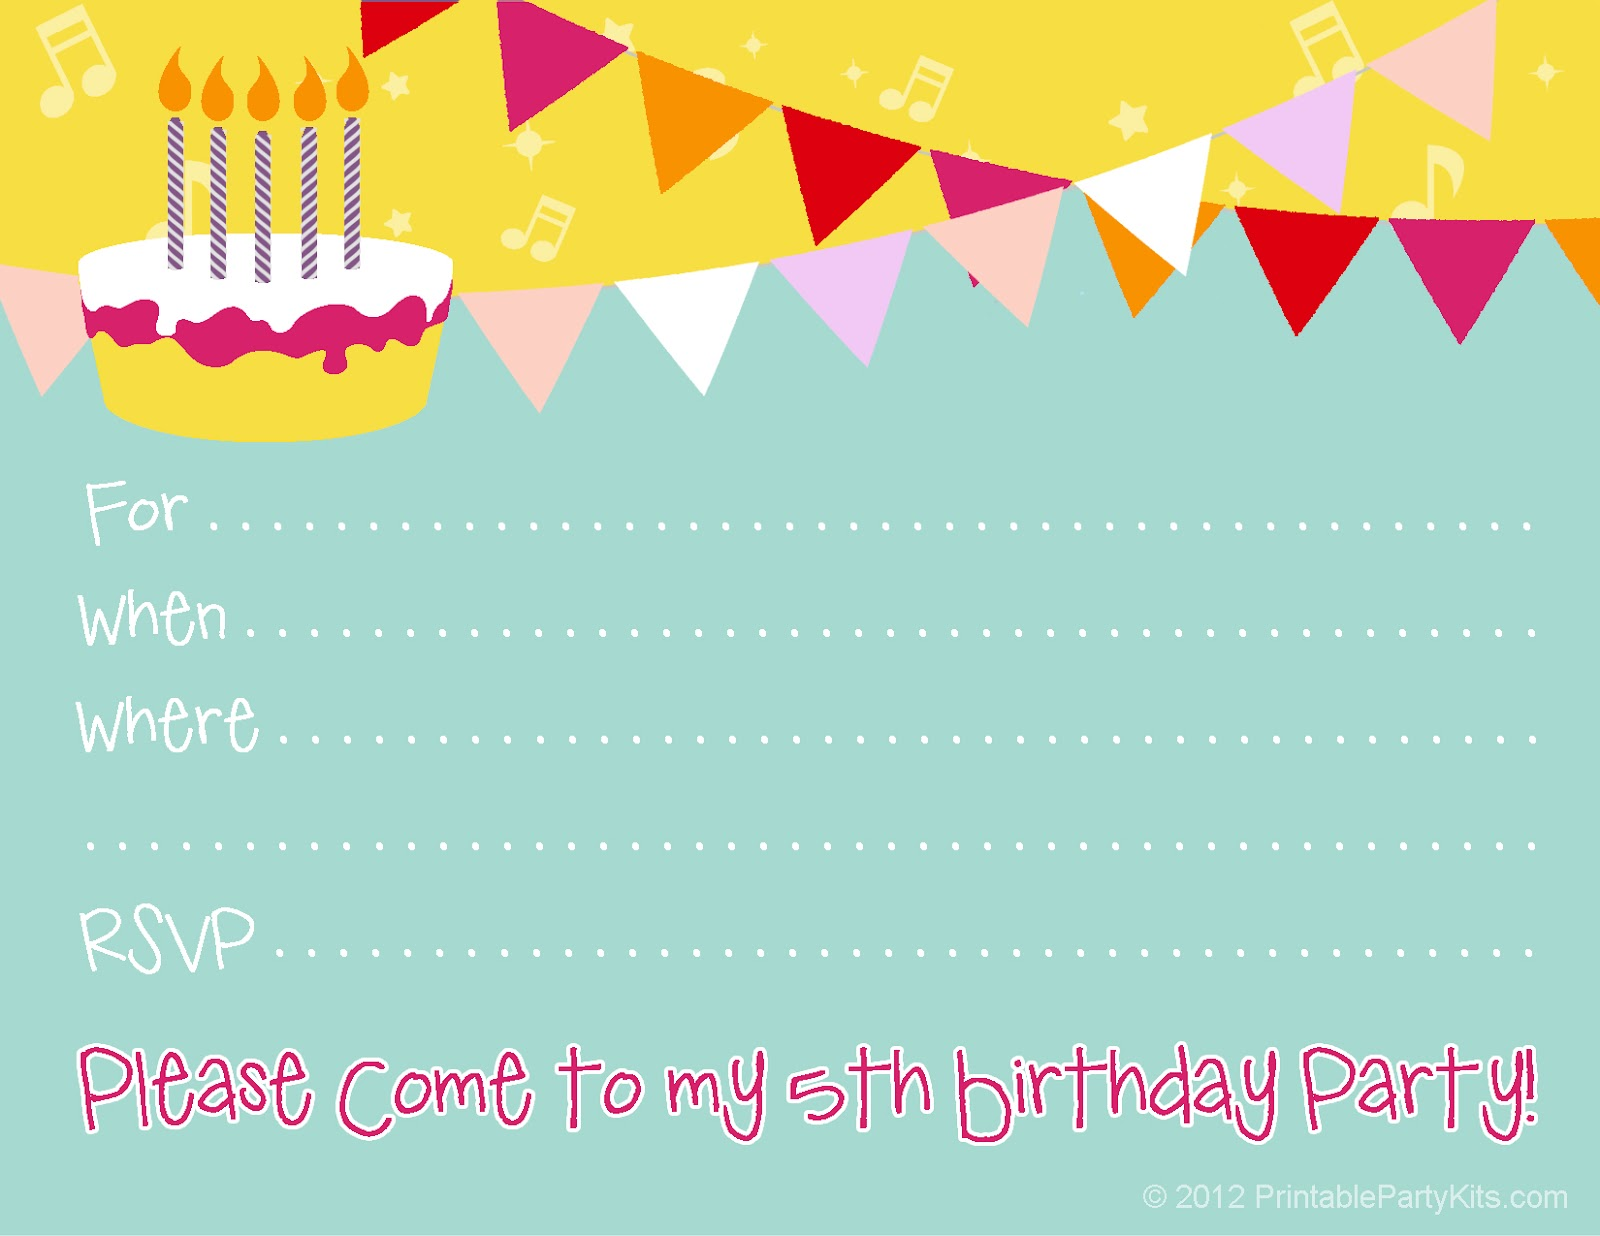 Free birthday party invitation template robertottni free birthday party invitation template stopboris